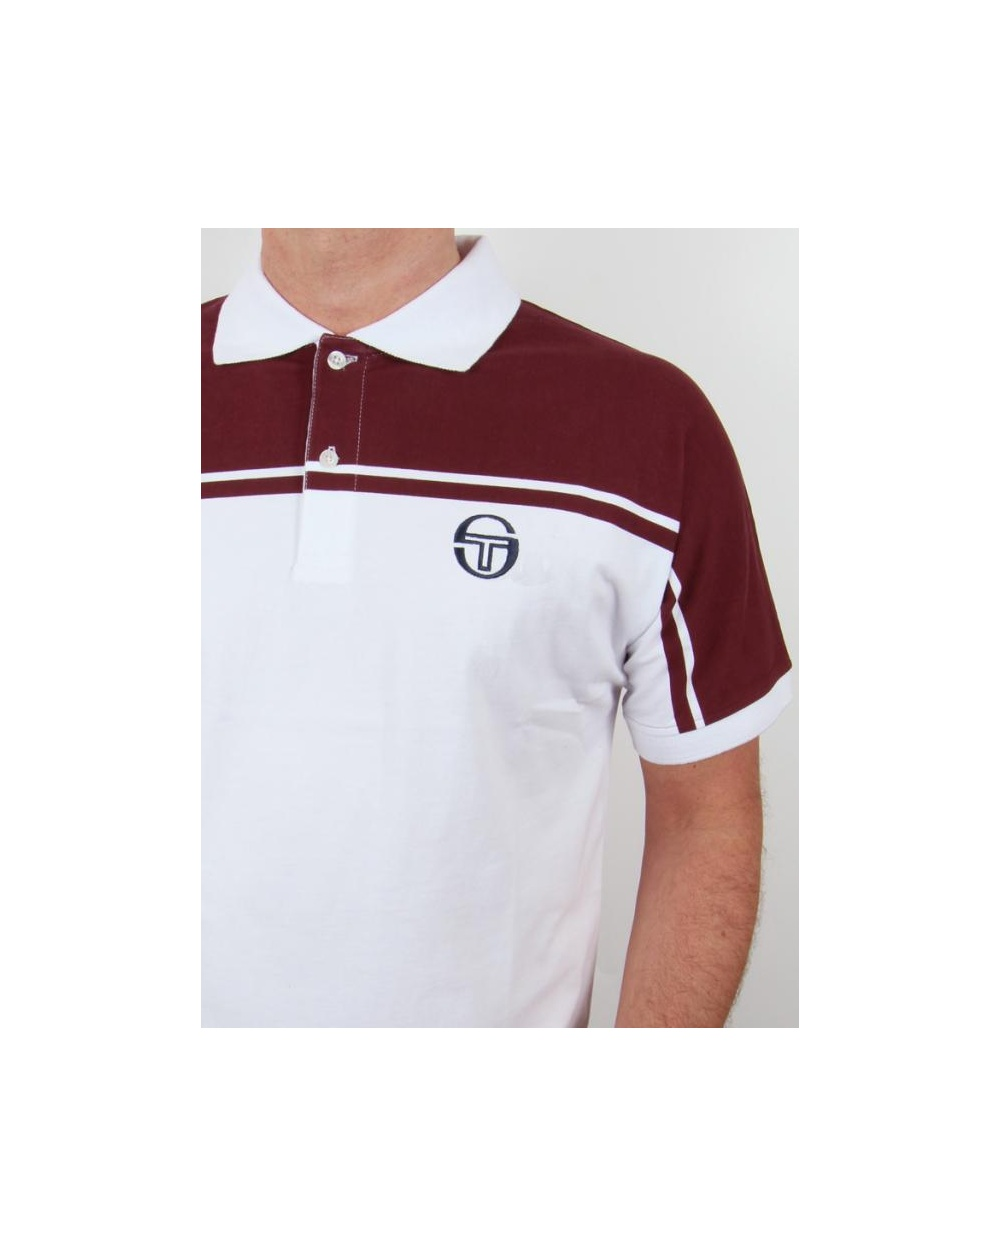 Sergio Tacchini New Young Line Polo Shirt White/burgundy - sergio ...